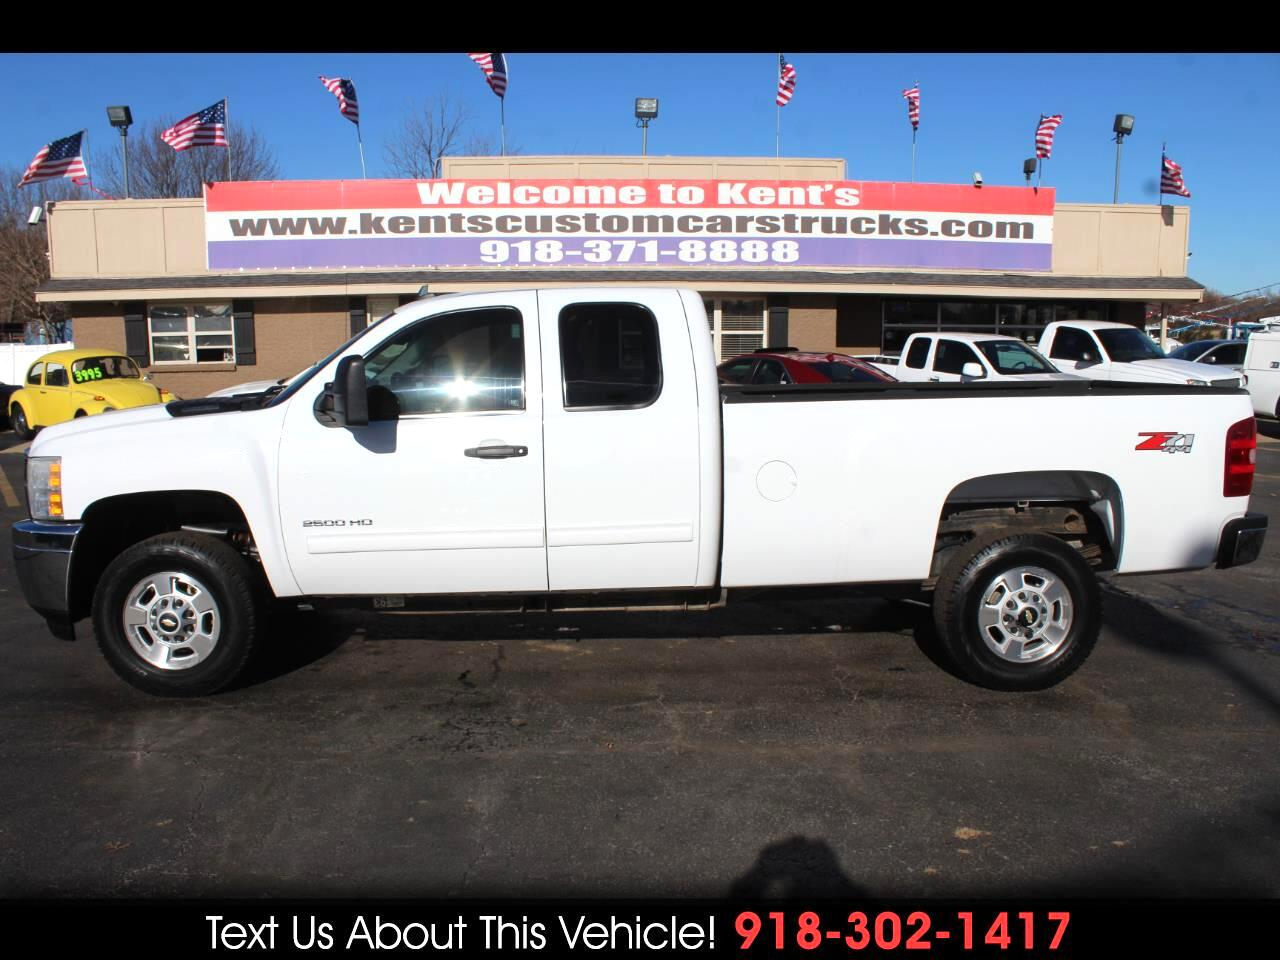 2011 Chevrolet Silverado 2500HD LT Extended Cab 4WD Long Bed Z71